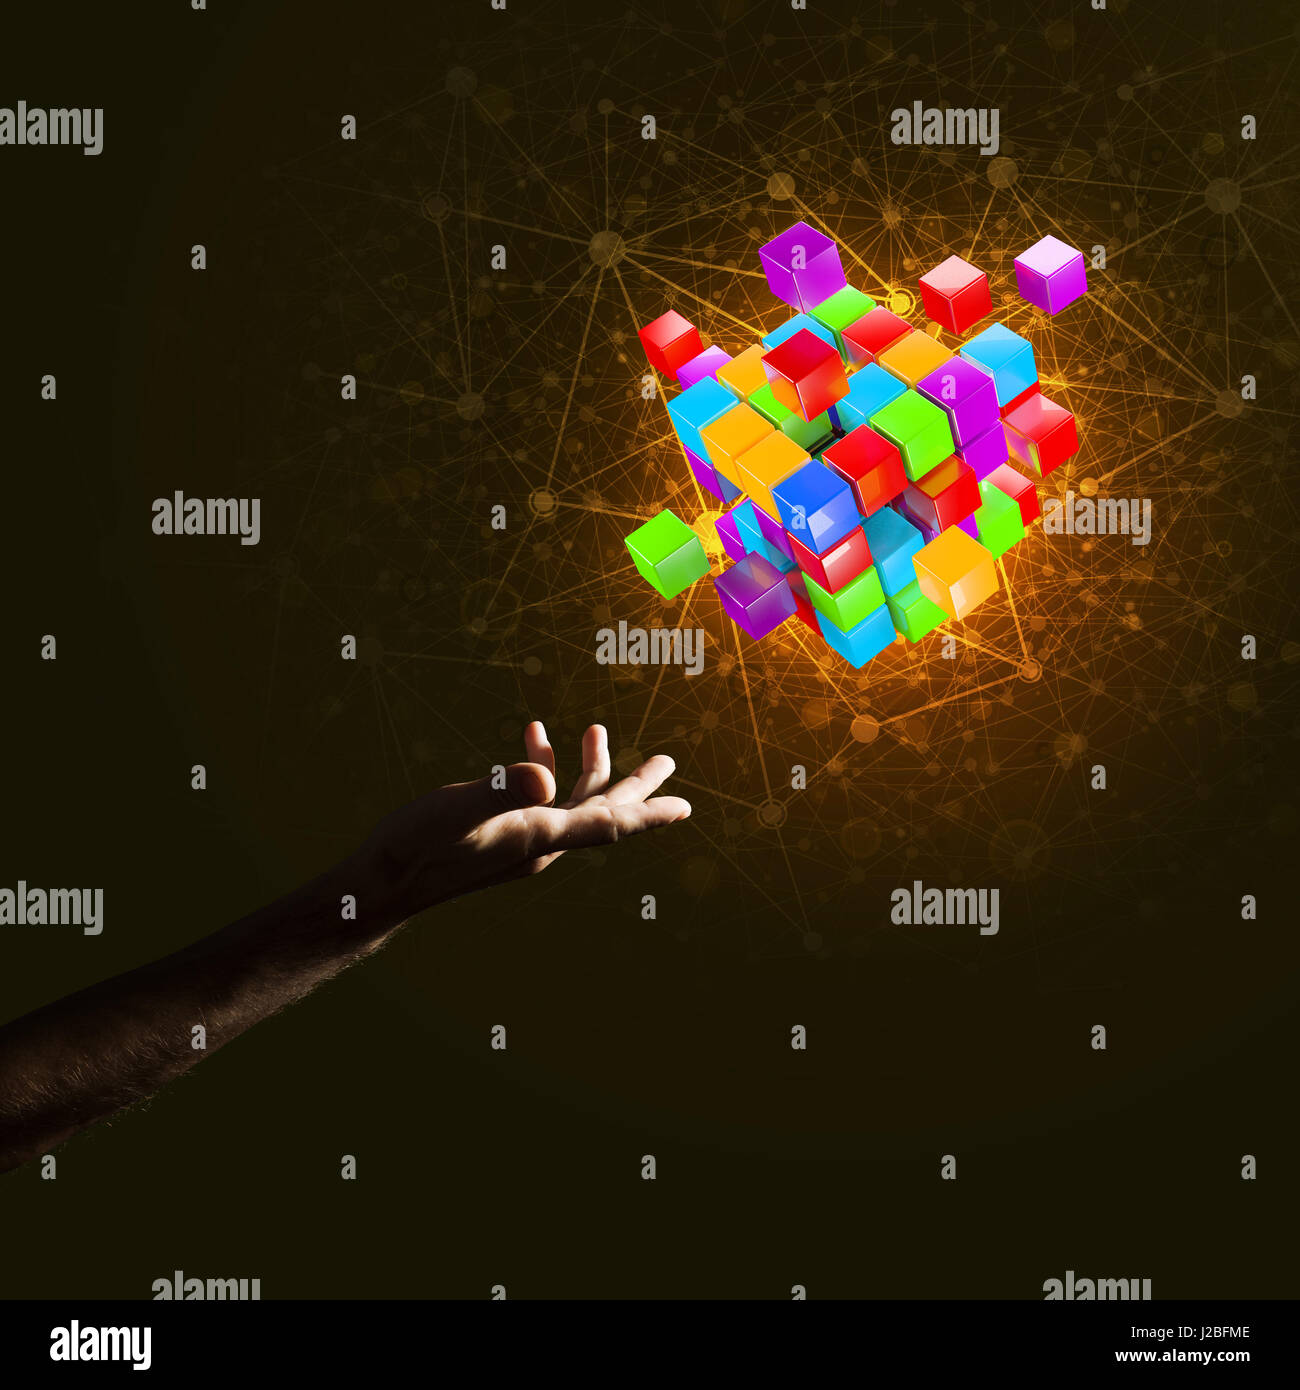 Idea of new technologies and integration presented by cube figure - Stock Image